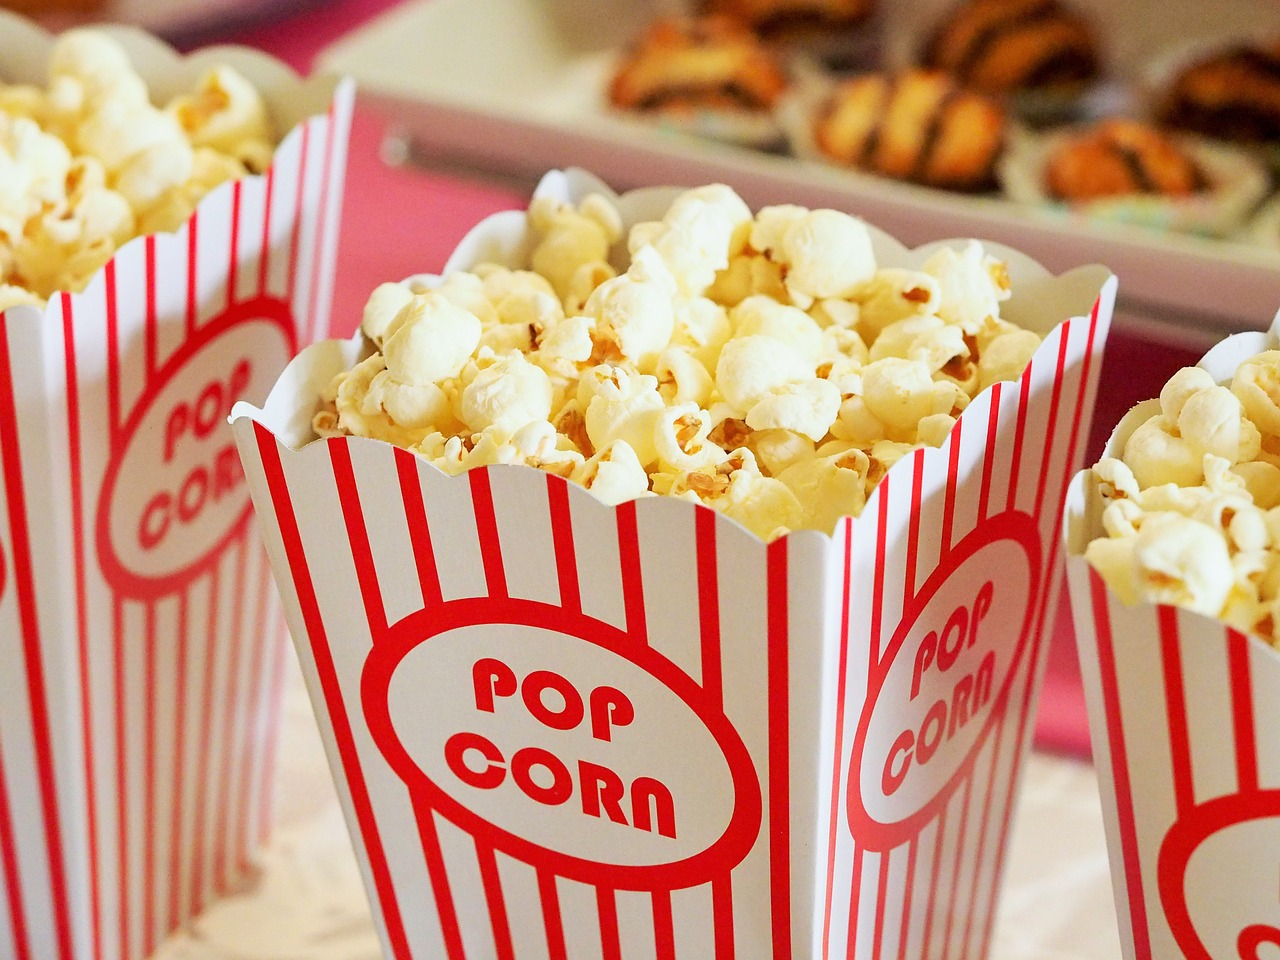 10 Teen Movies To Watch This Weekend